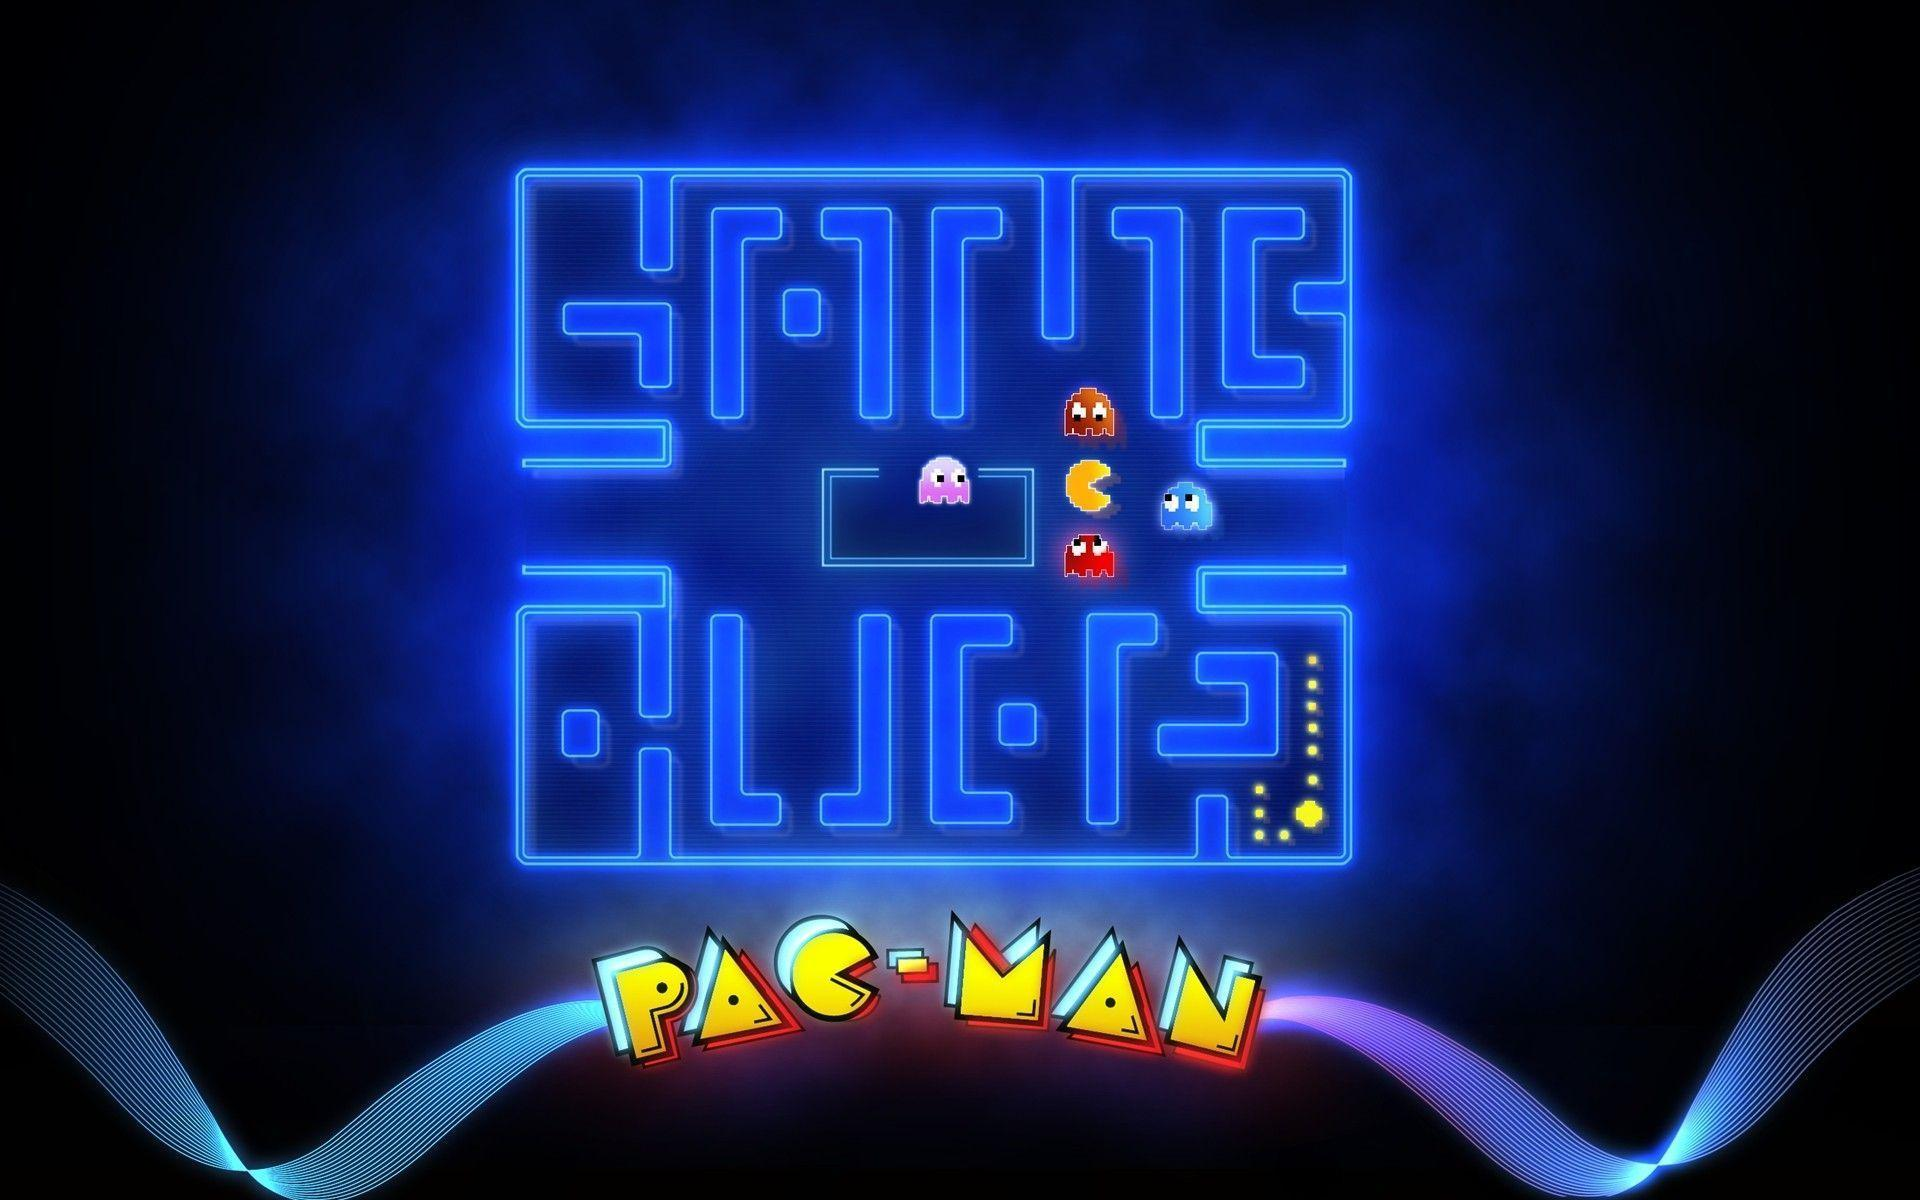 Arcade Game Wallpaper Group With 57 Items: Pacman Wallpapers